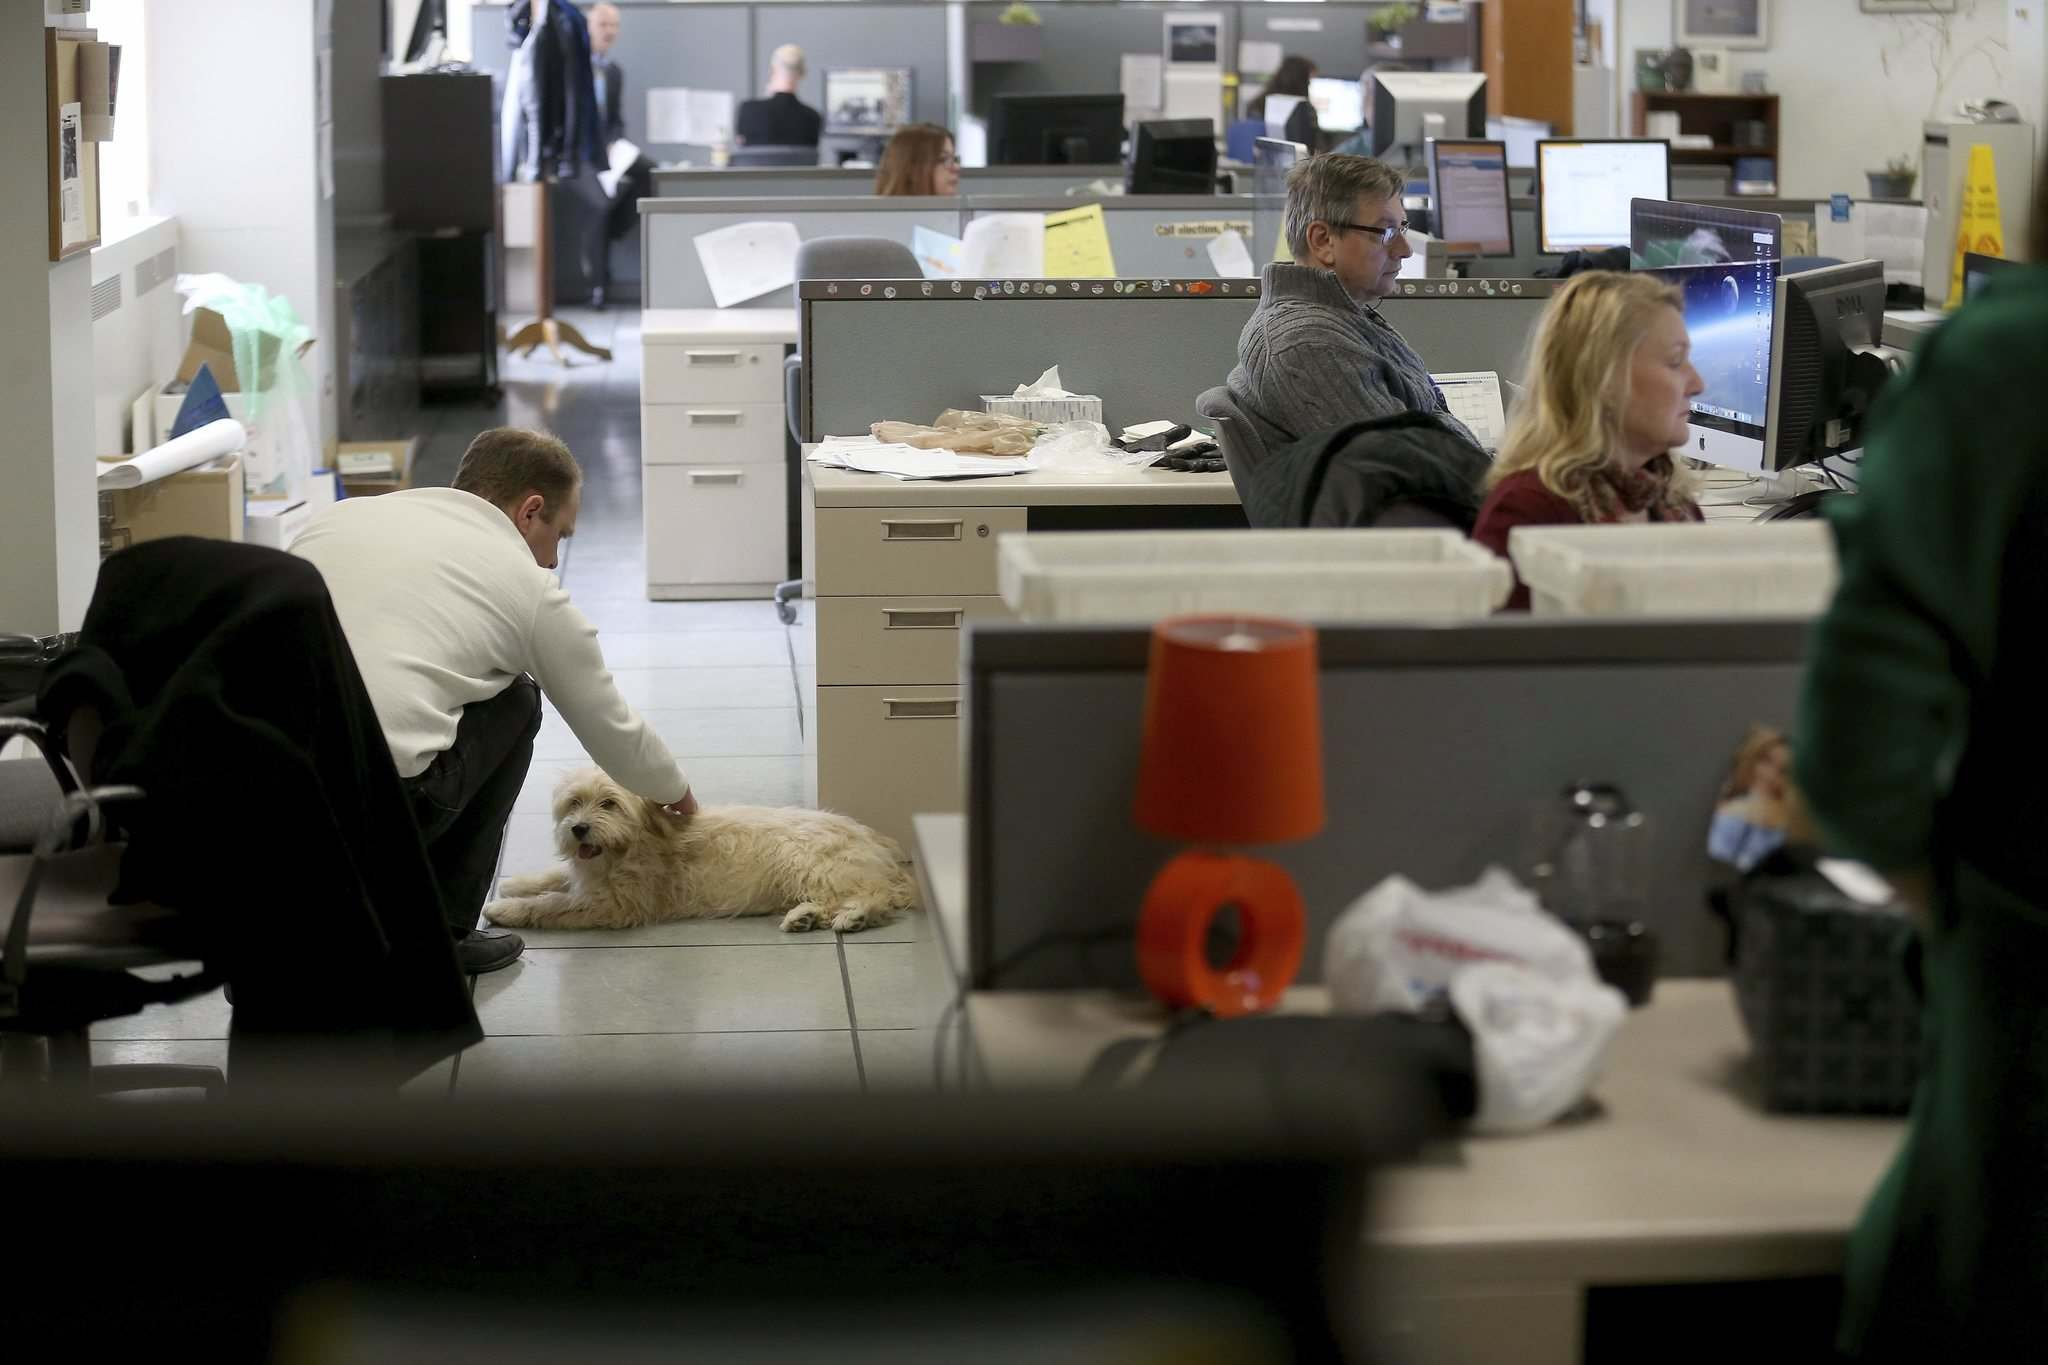 TREVOR HAGAN / WINNIPEG FREE PRESS</p><p>Oliver, a dog owned by graphic artist Leesa Dahl, at the Free Press office.</p></p>